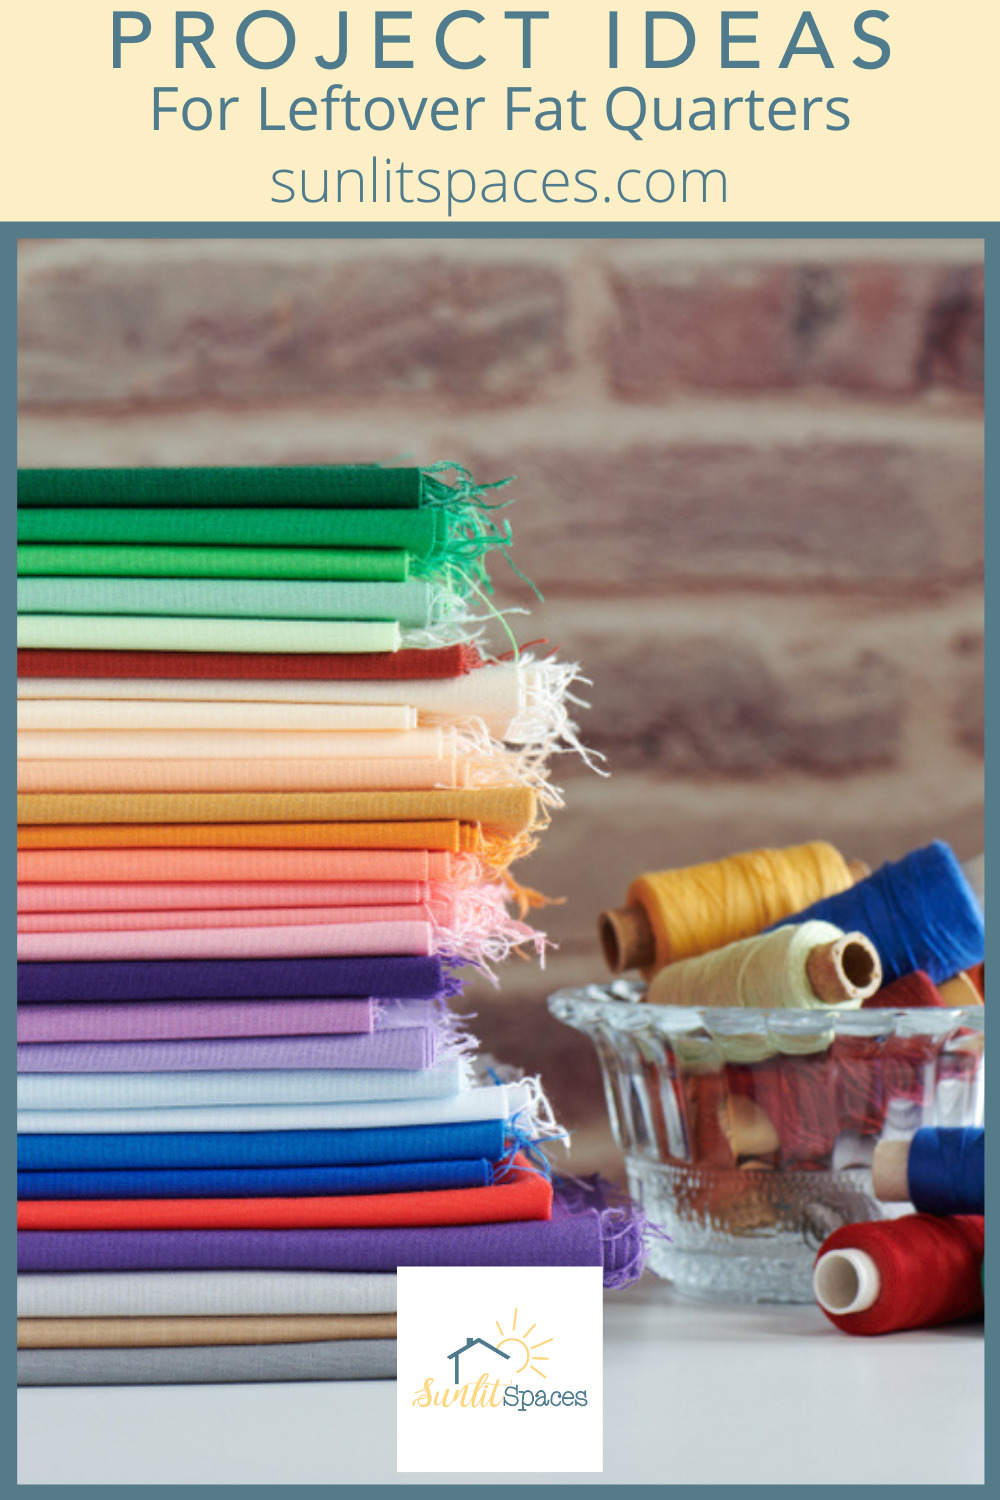 Sunlitspaces.com knows a thing or two about DIY and craft projects. Find simple tricks to step up your craft game now. If you're into quilting, these ideas are perfect for your spare fat quarters.